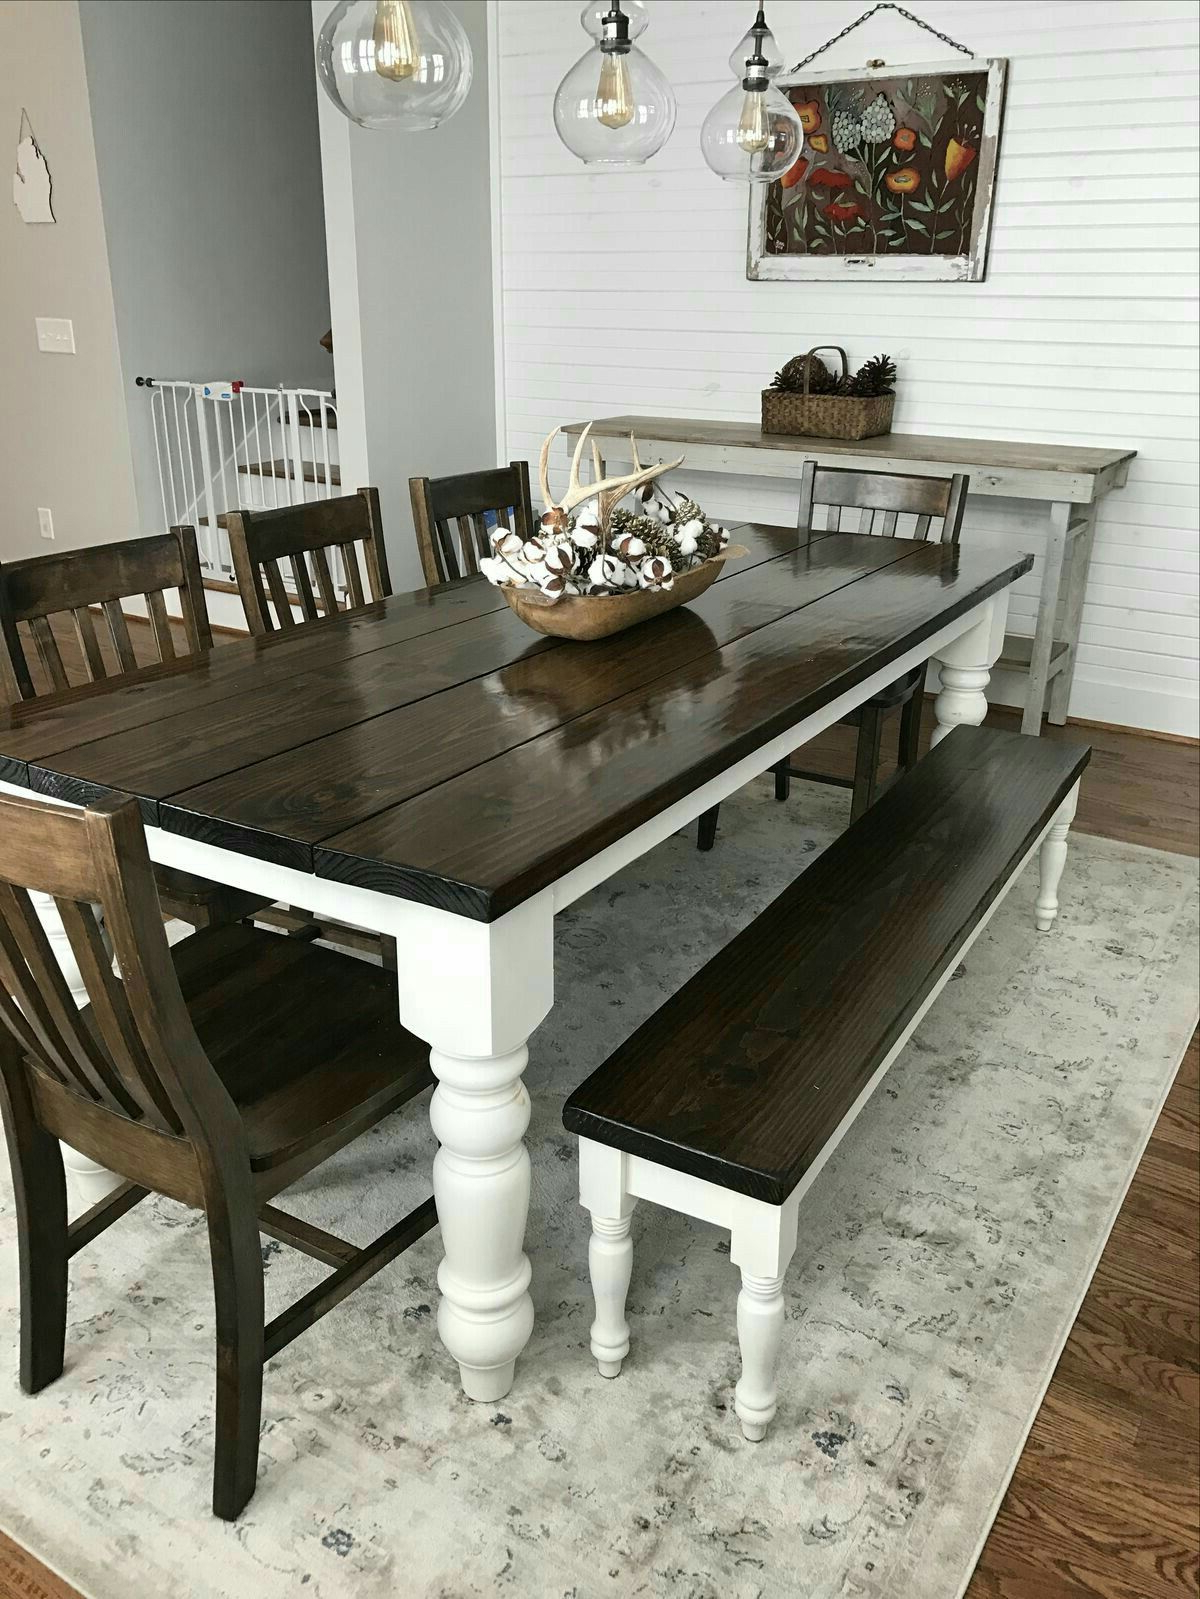 Most Recent Distressed Walnut And Black Finish Wood Modern Country Dining Tables Regarding No Bench But Love The White Against The Dark Wood (View 4 of 25)